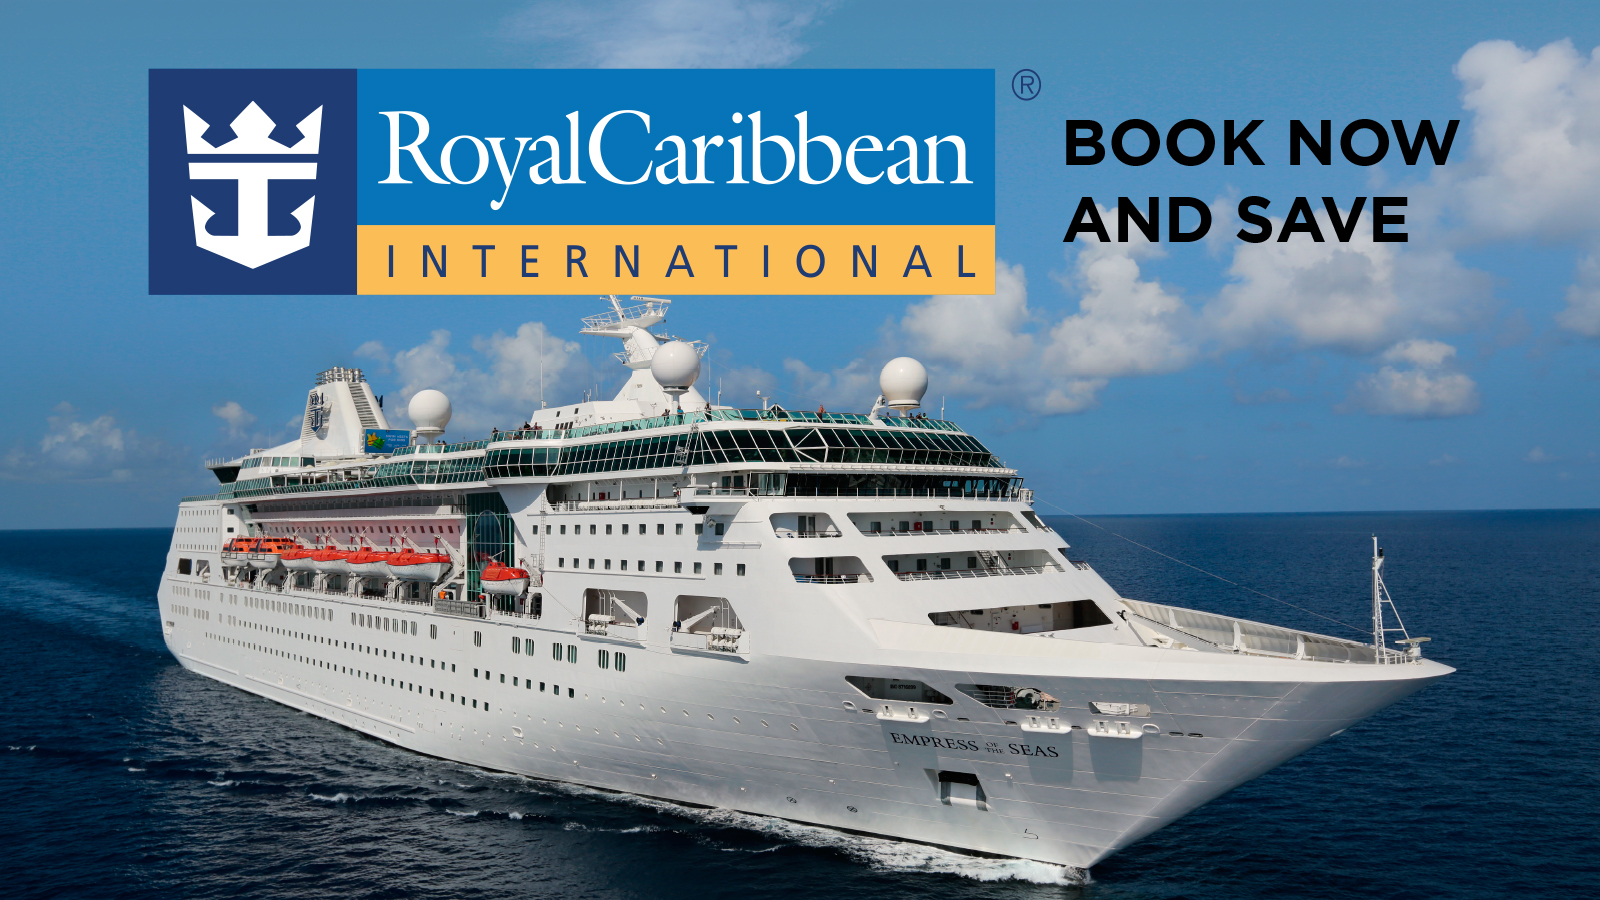 ROYAL CARIBBEAN VOYAGES FROM $299 Book Now and Save